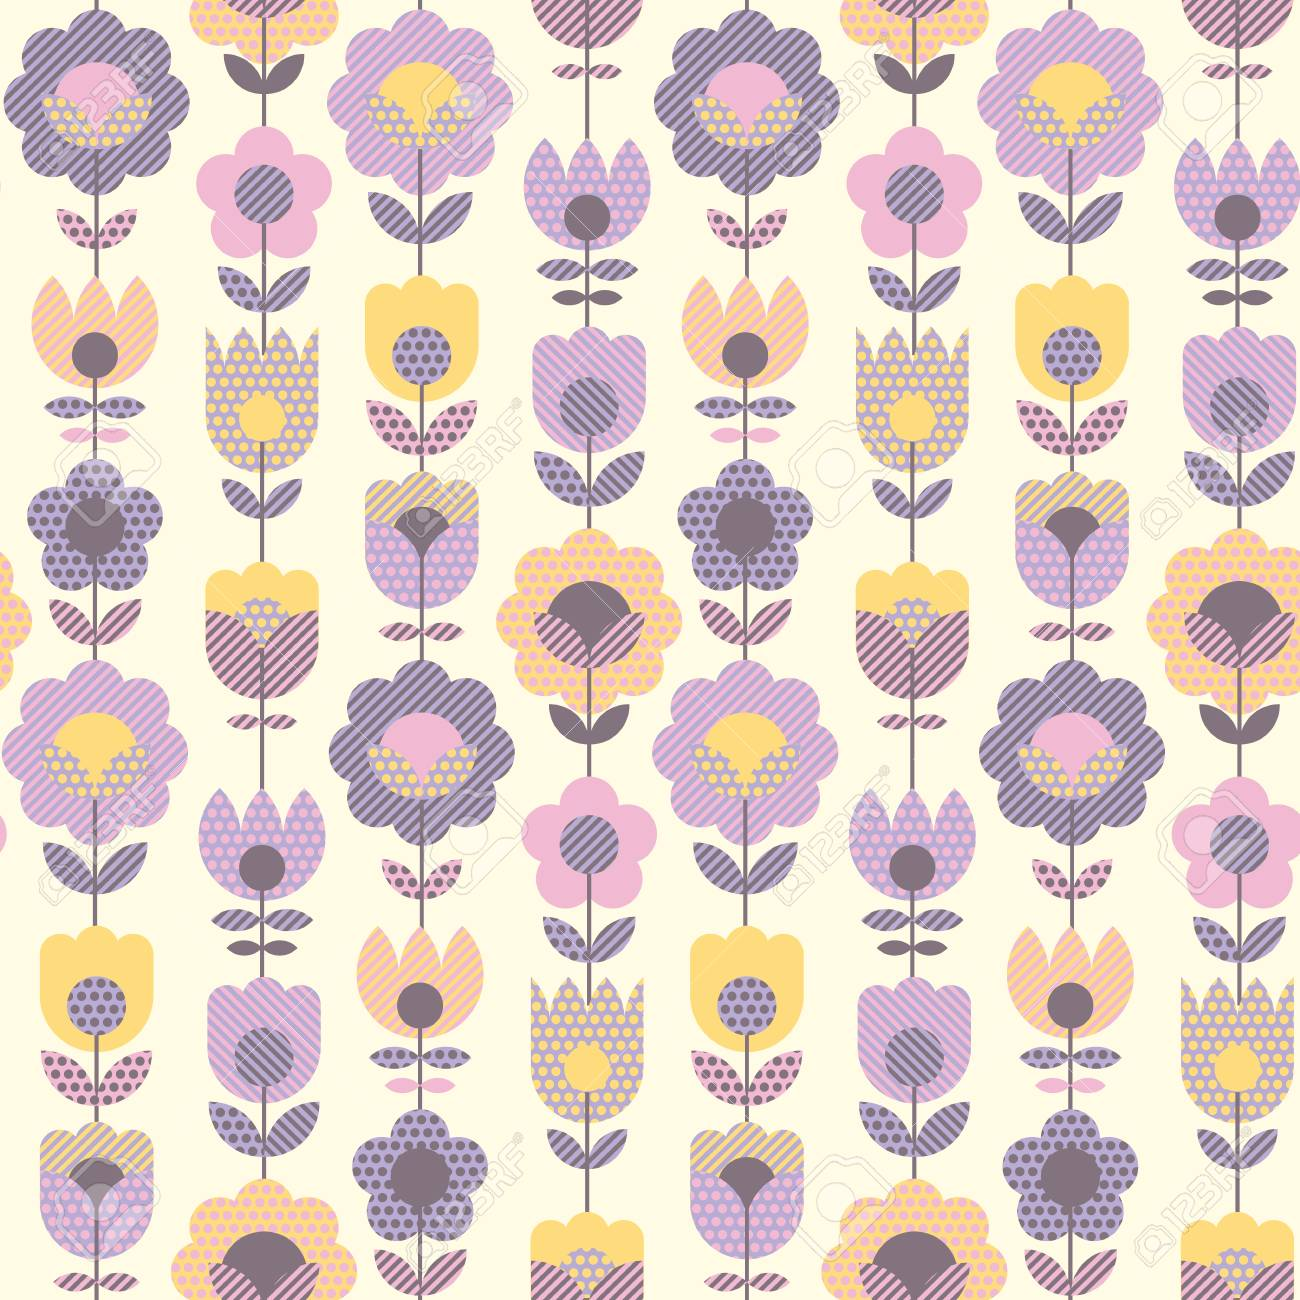 Geometric Decorative Flower Pattern For Fabric Wrapping Paper